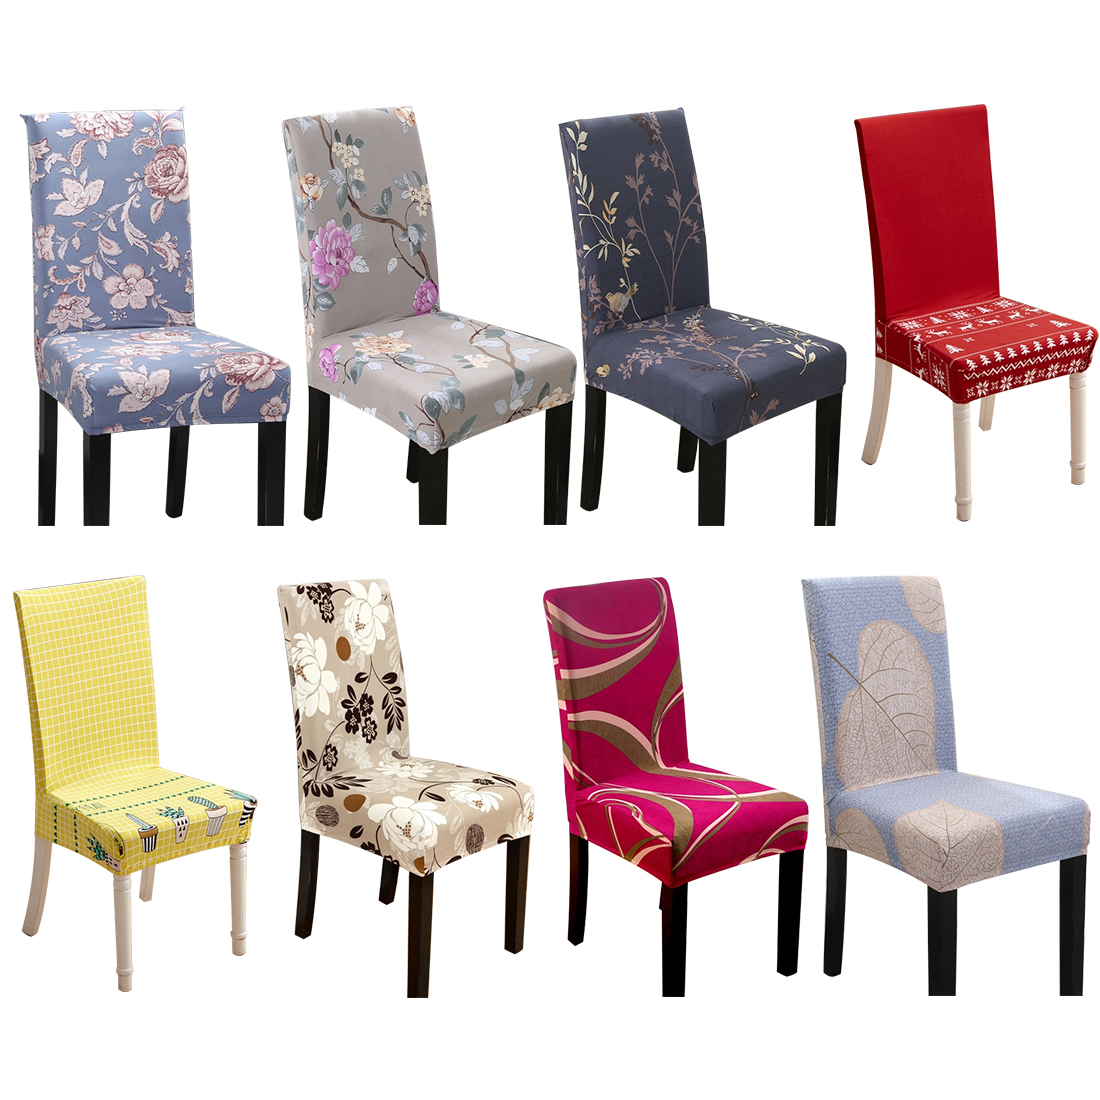 Multitype Flower Printing Removable Chair Cover Elastic Slipcover Kitchen Seat Case Spandex Stretch Chair Cover For Banquet